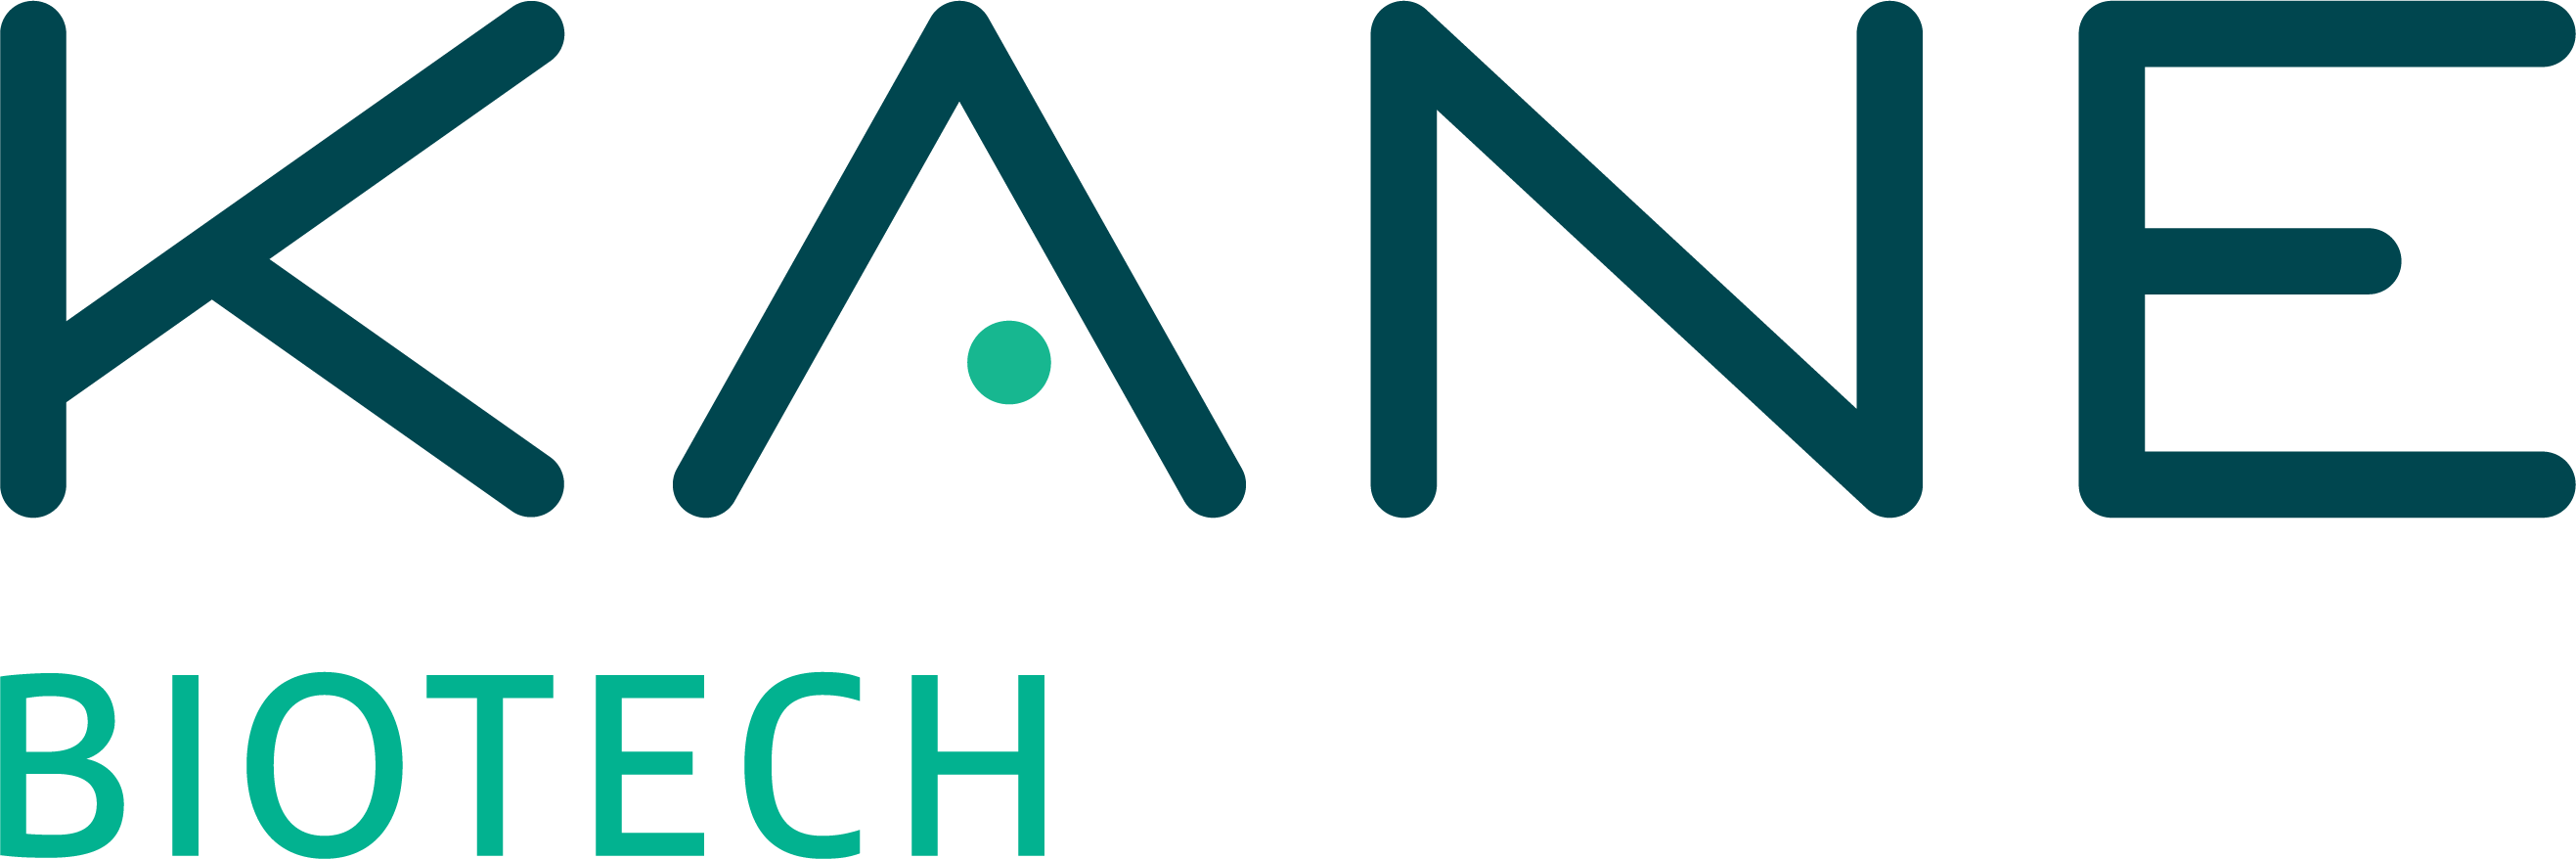 Kane Biotech Retains GR Consulting to Identify Potential Partnerships for its Proprietary DispersinB® Wound Care Hydrogel